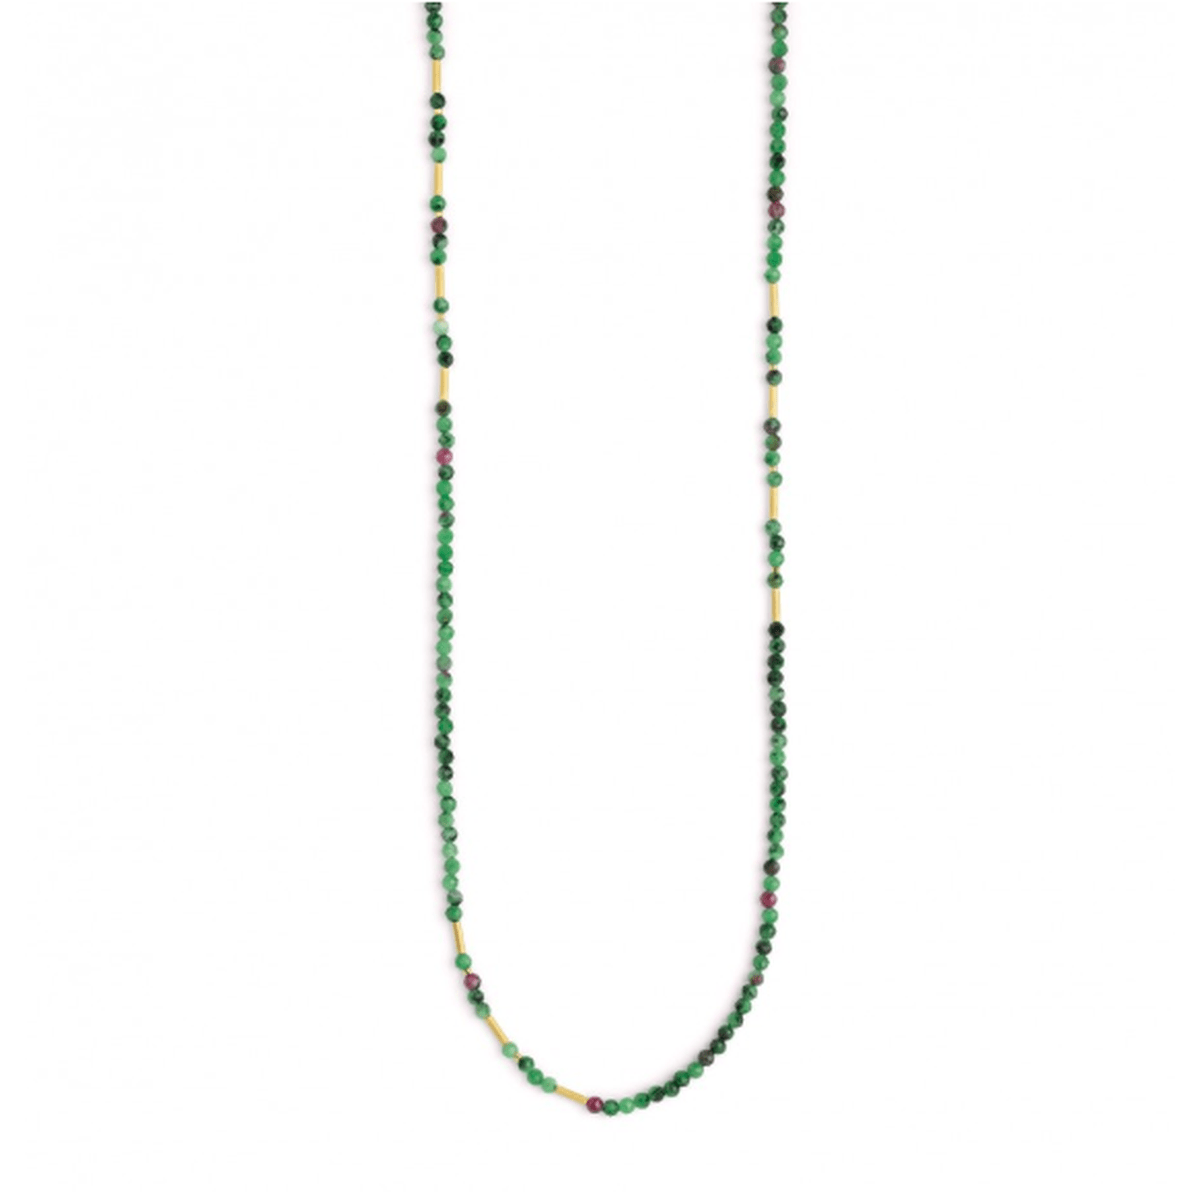 Landelon Ruby Zoisite Necklace - 84405086-Bernd Wolf-Renee Taylor Gallery